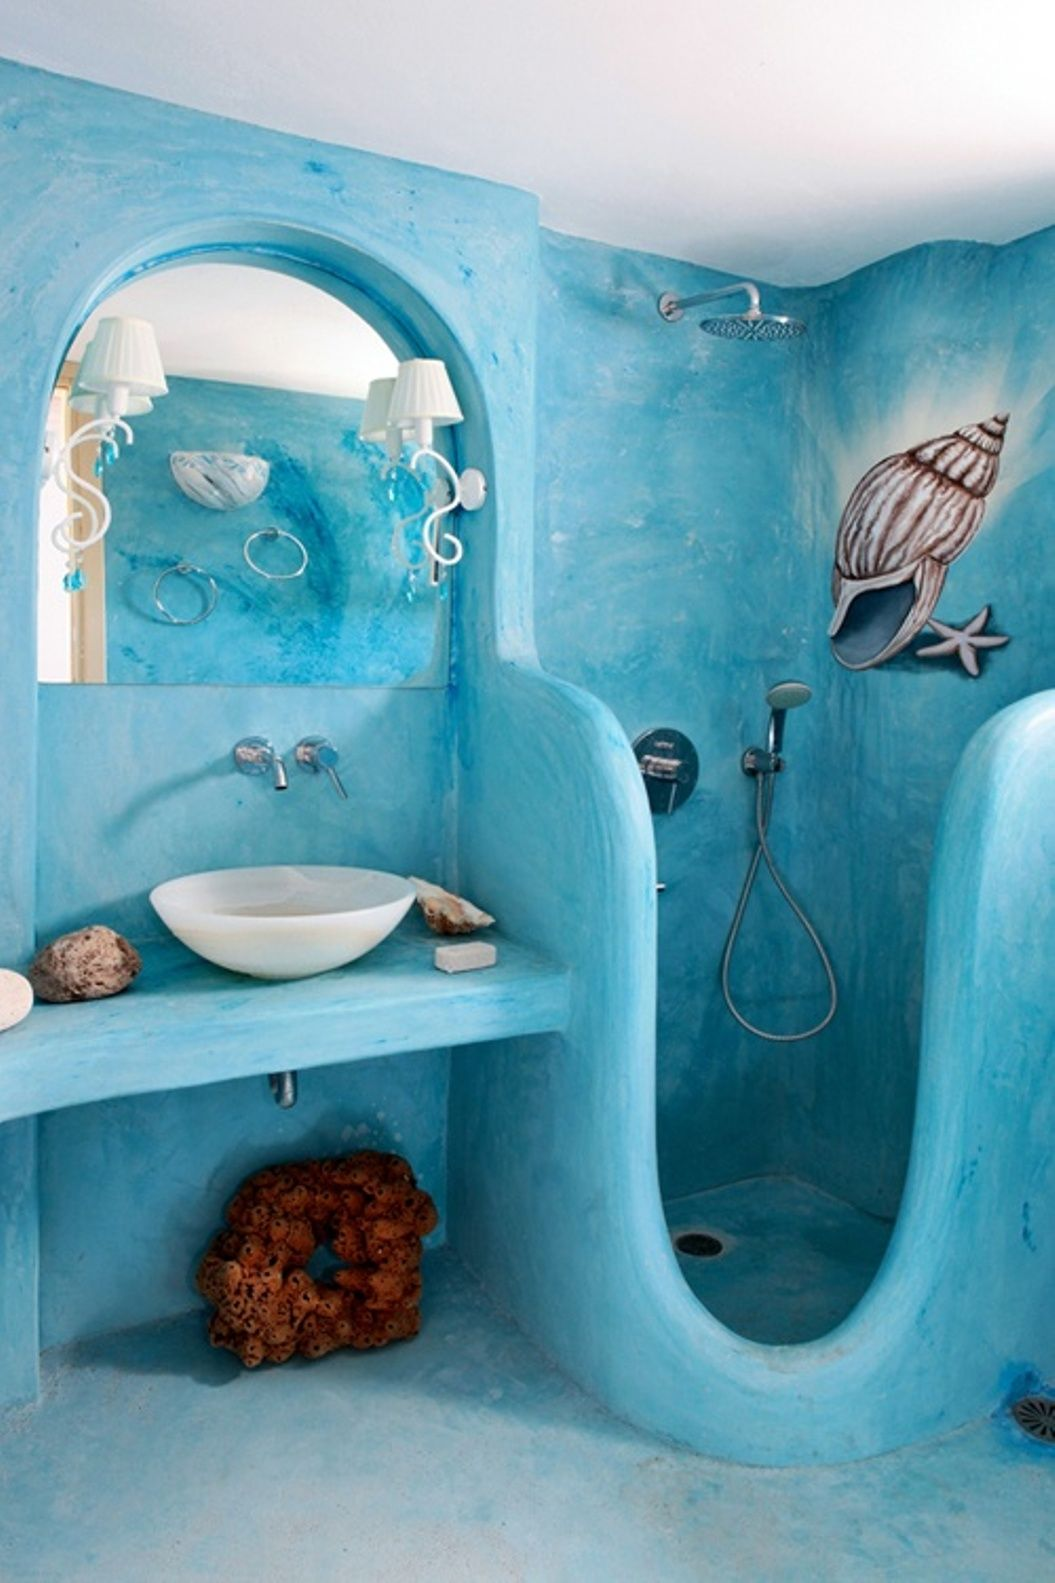 Bathroom contemporary unique bathroom design nautical for Quirky bathroom designs